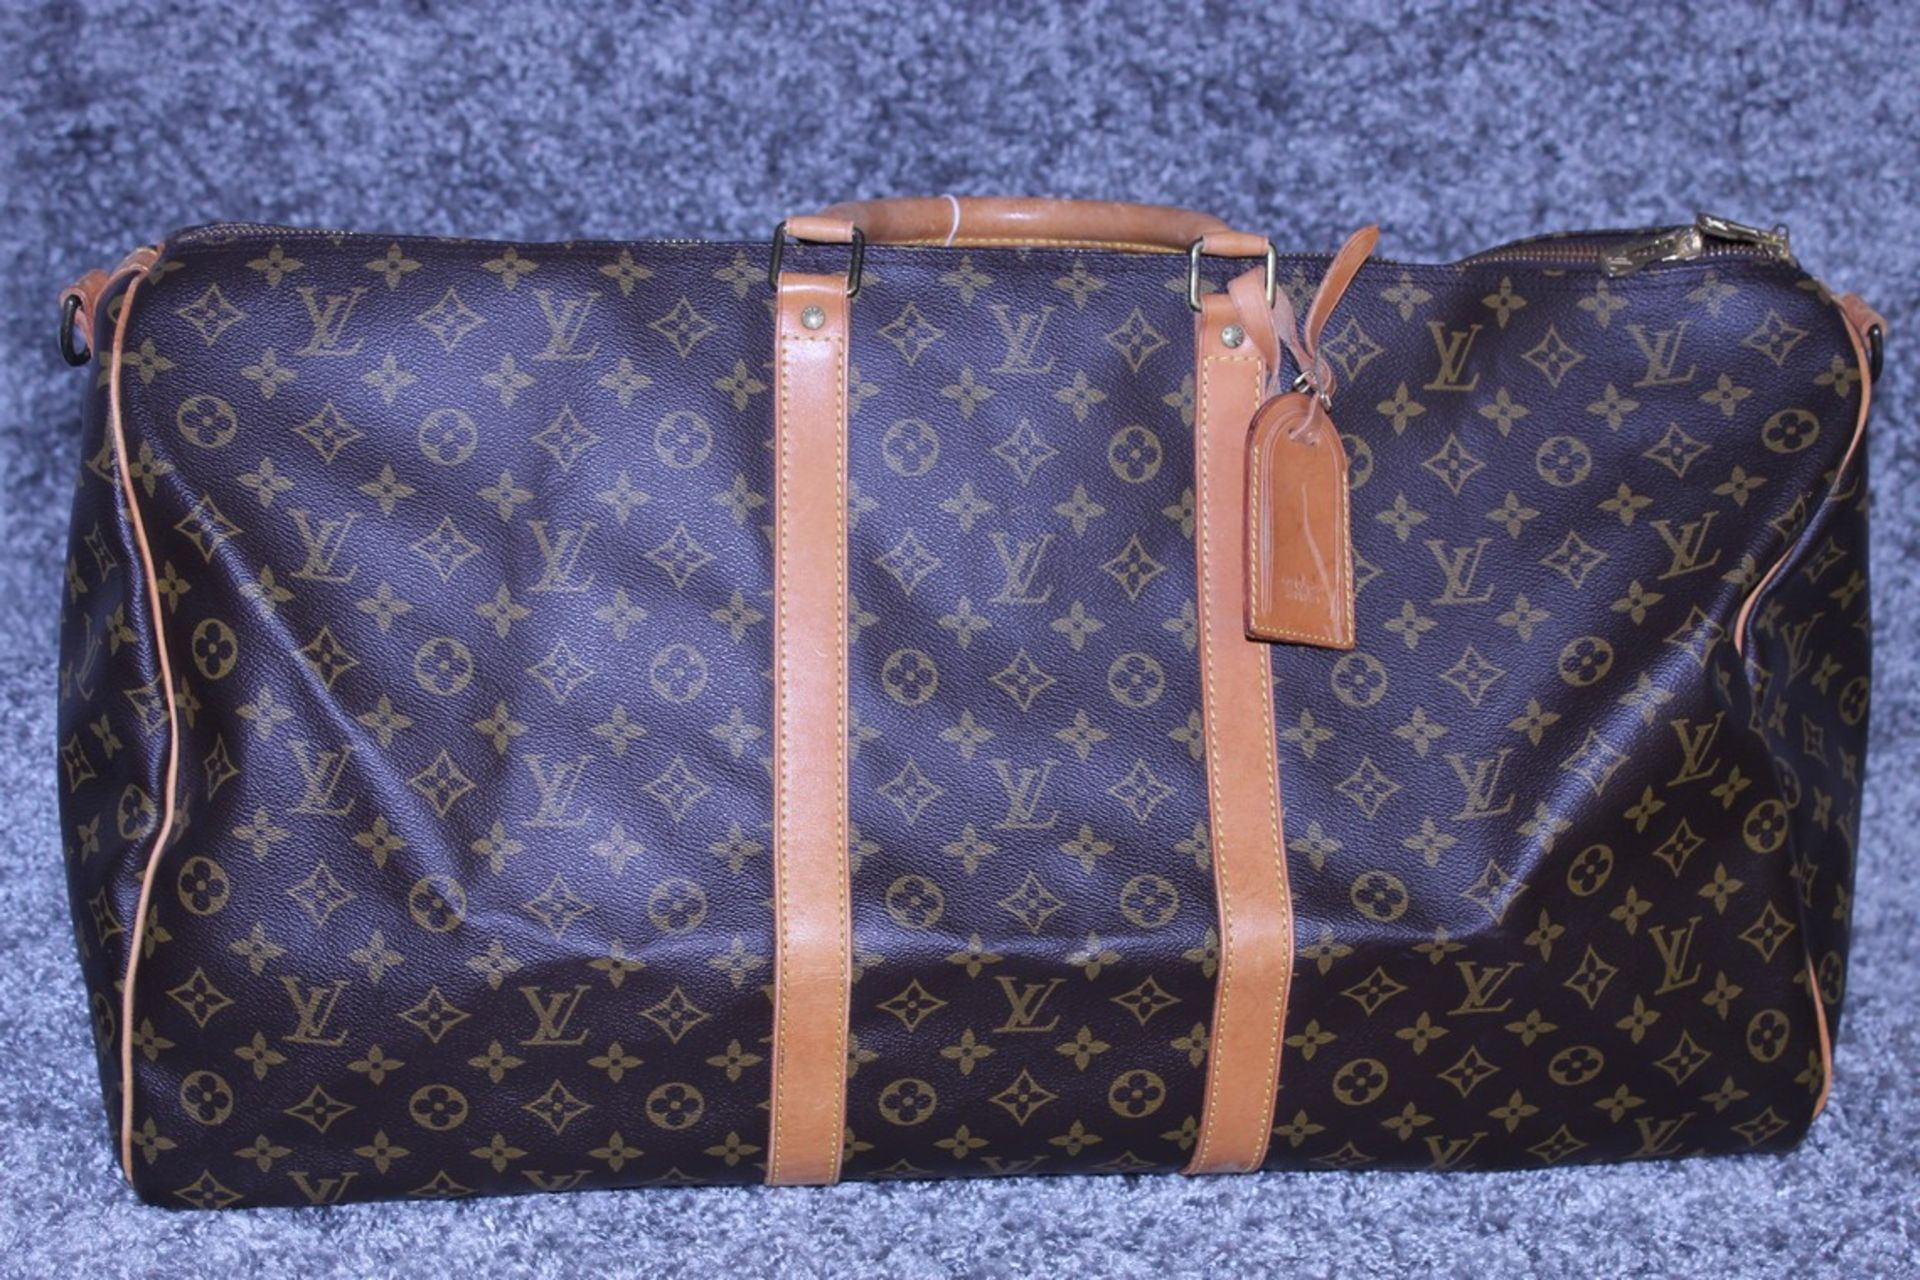 RRP £1,800 Louis Vuitton Keepall 60 Bandouliere Travel Bag, Brown Coated Canvas Monogram, 60X26X31Cm - Image 2 of 3